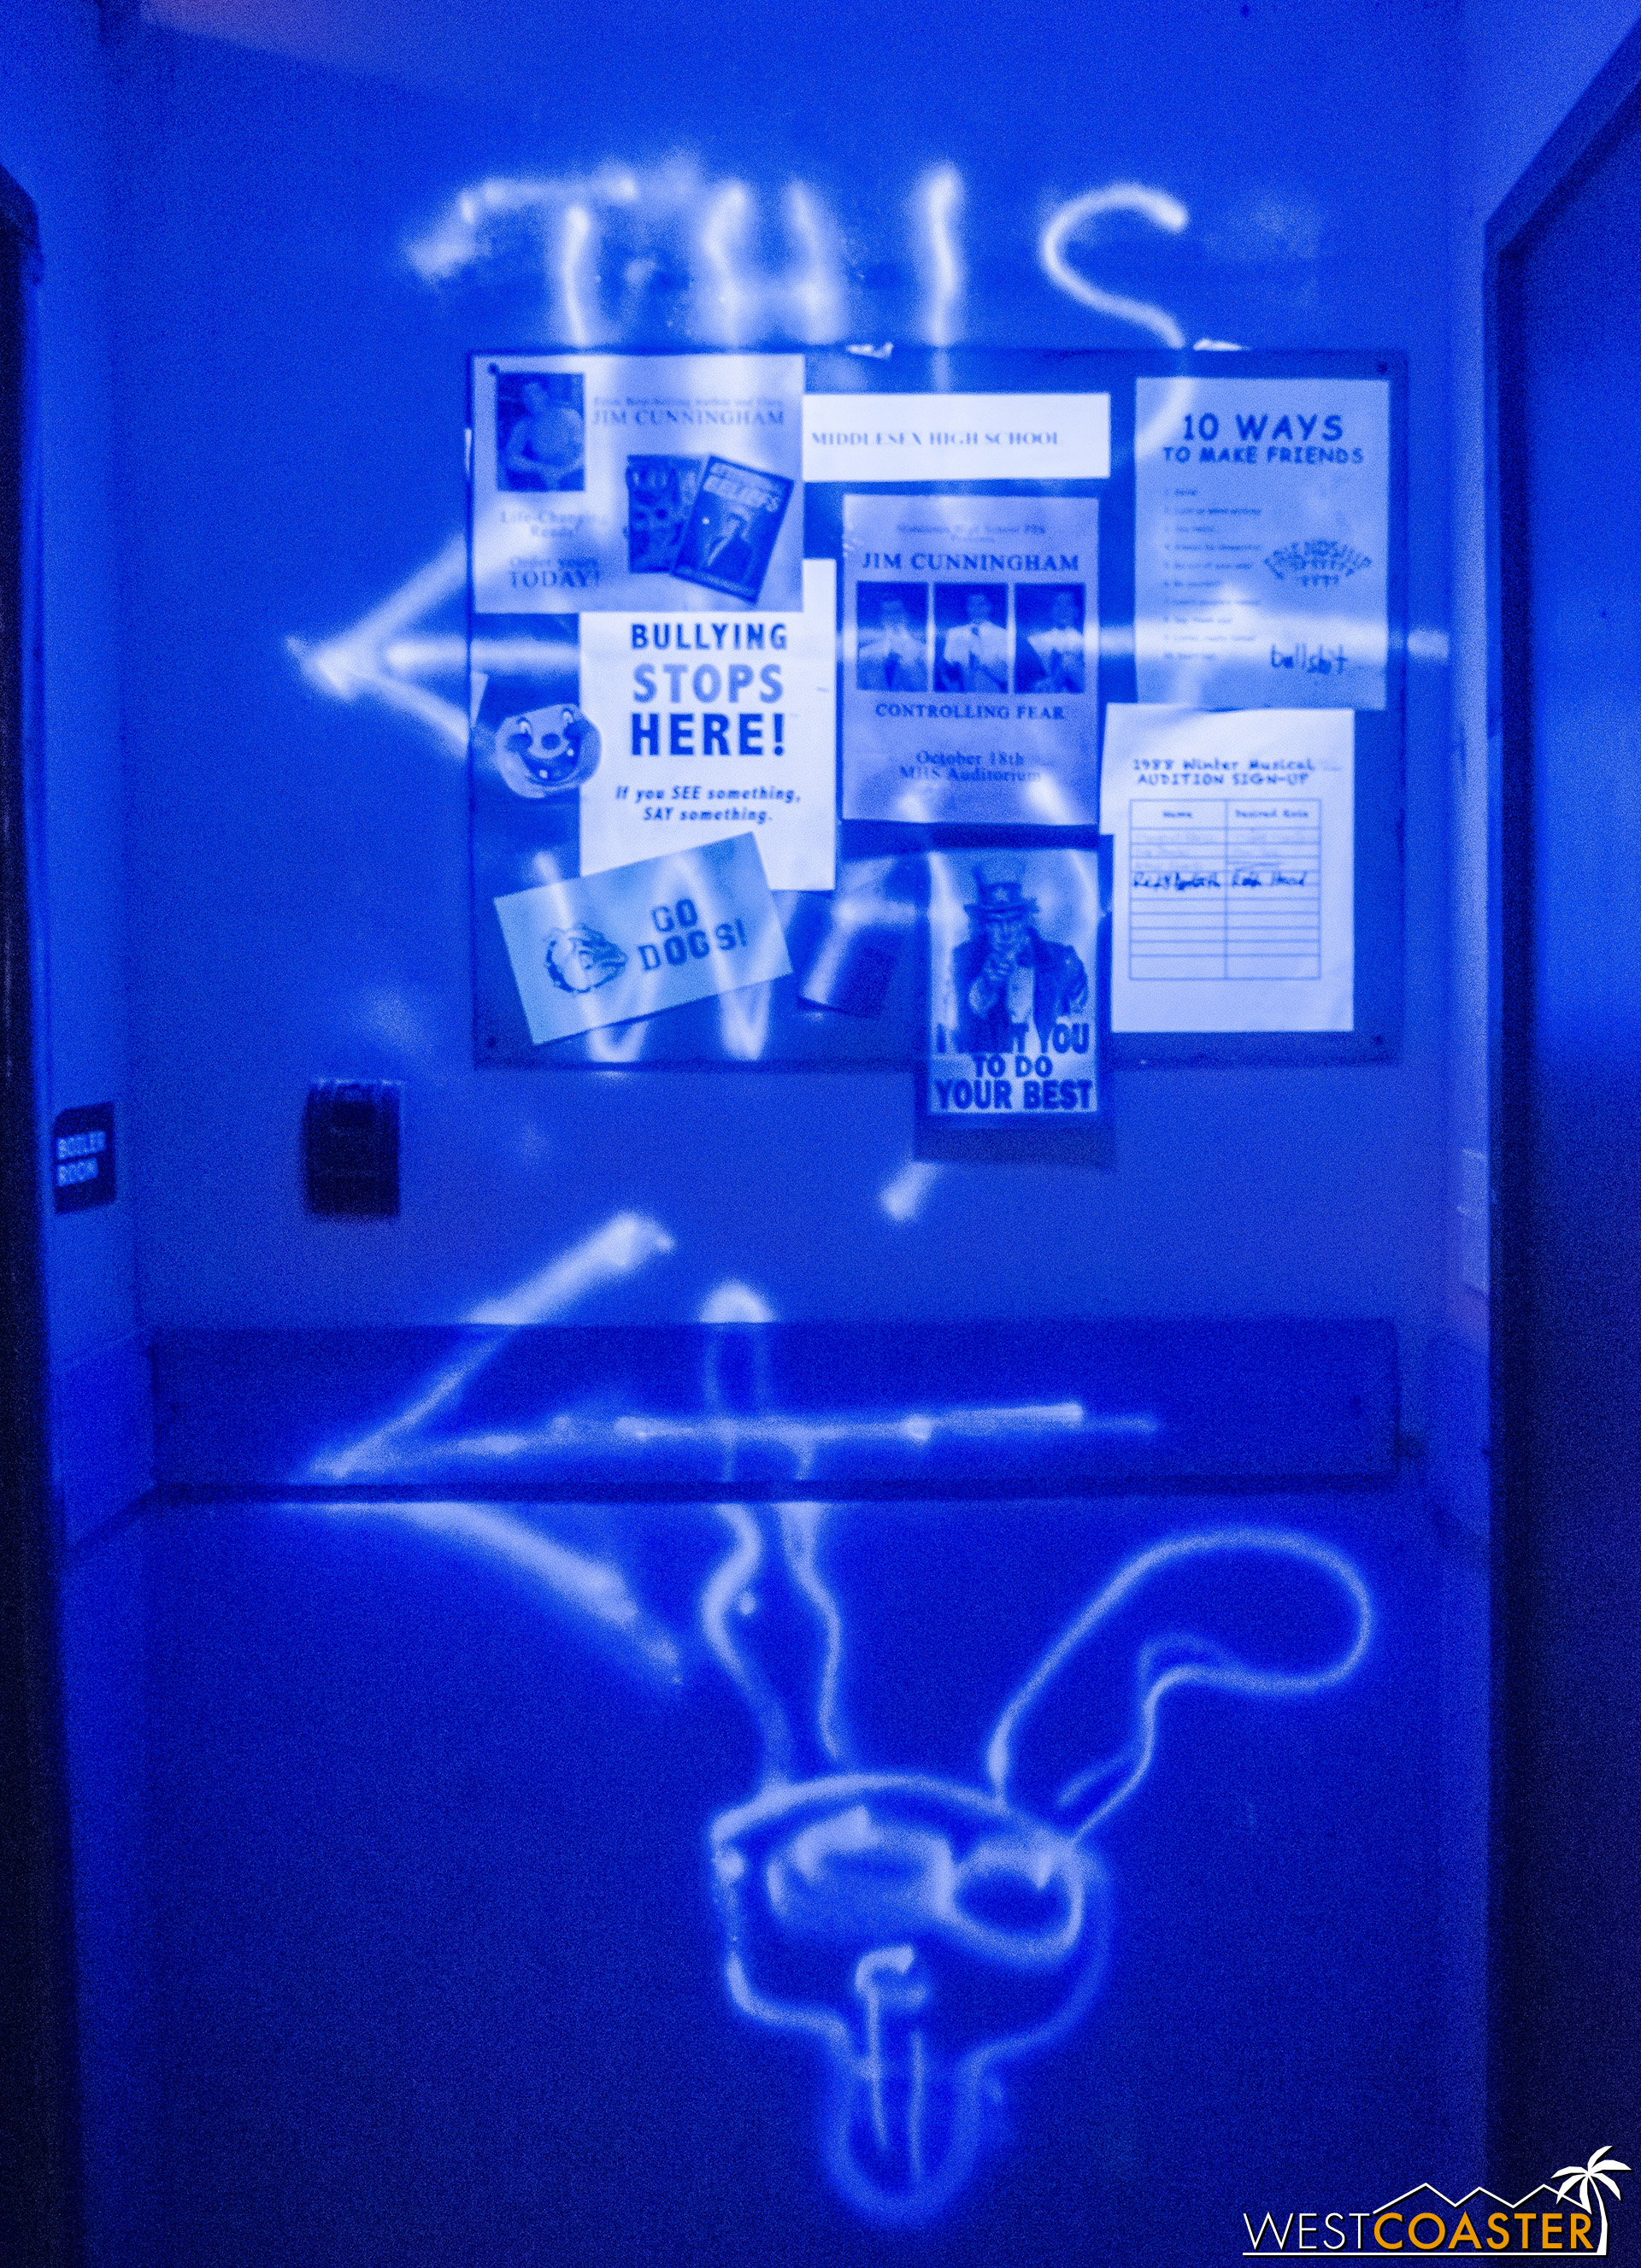 Follow the clues and the rabbit to progress through the Donnie Darko Experience.